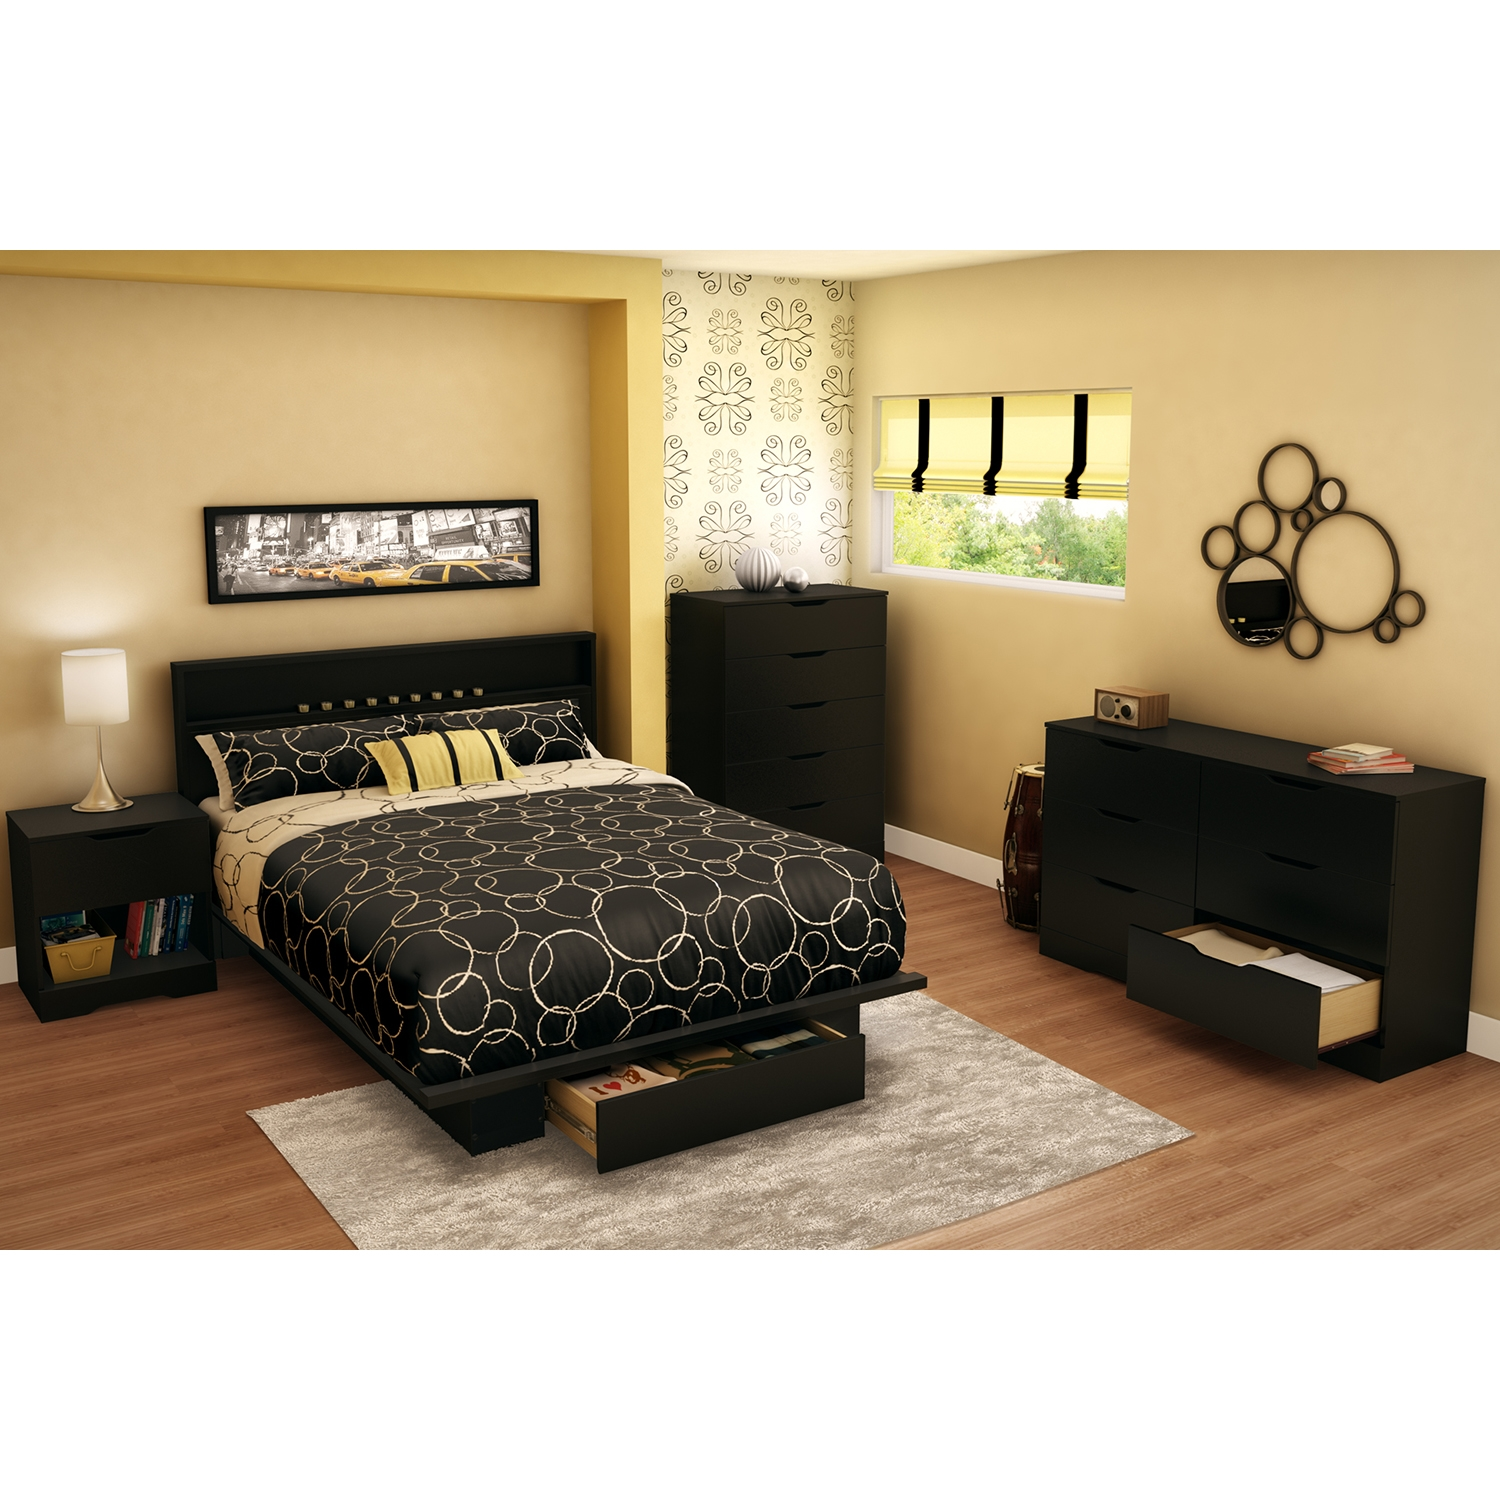 Holland Full/Queen Platform Bed with Headboard - 1 Drawer, Pure Black - SS-10042